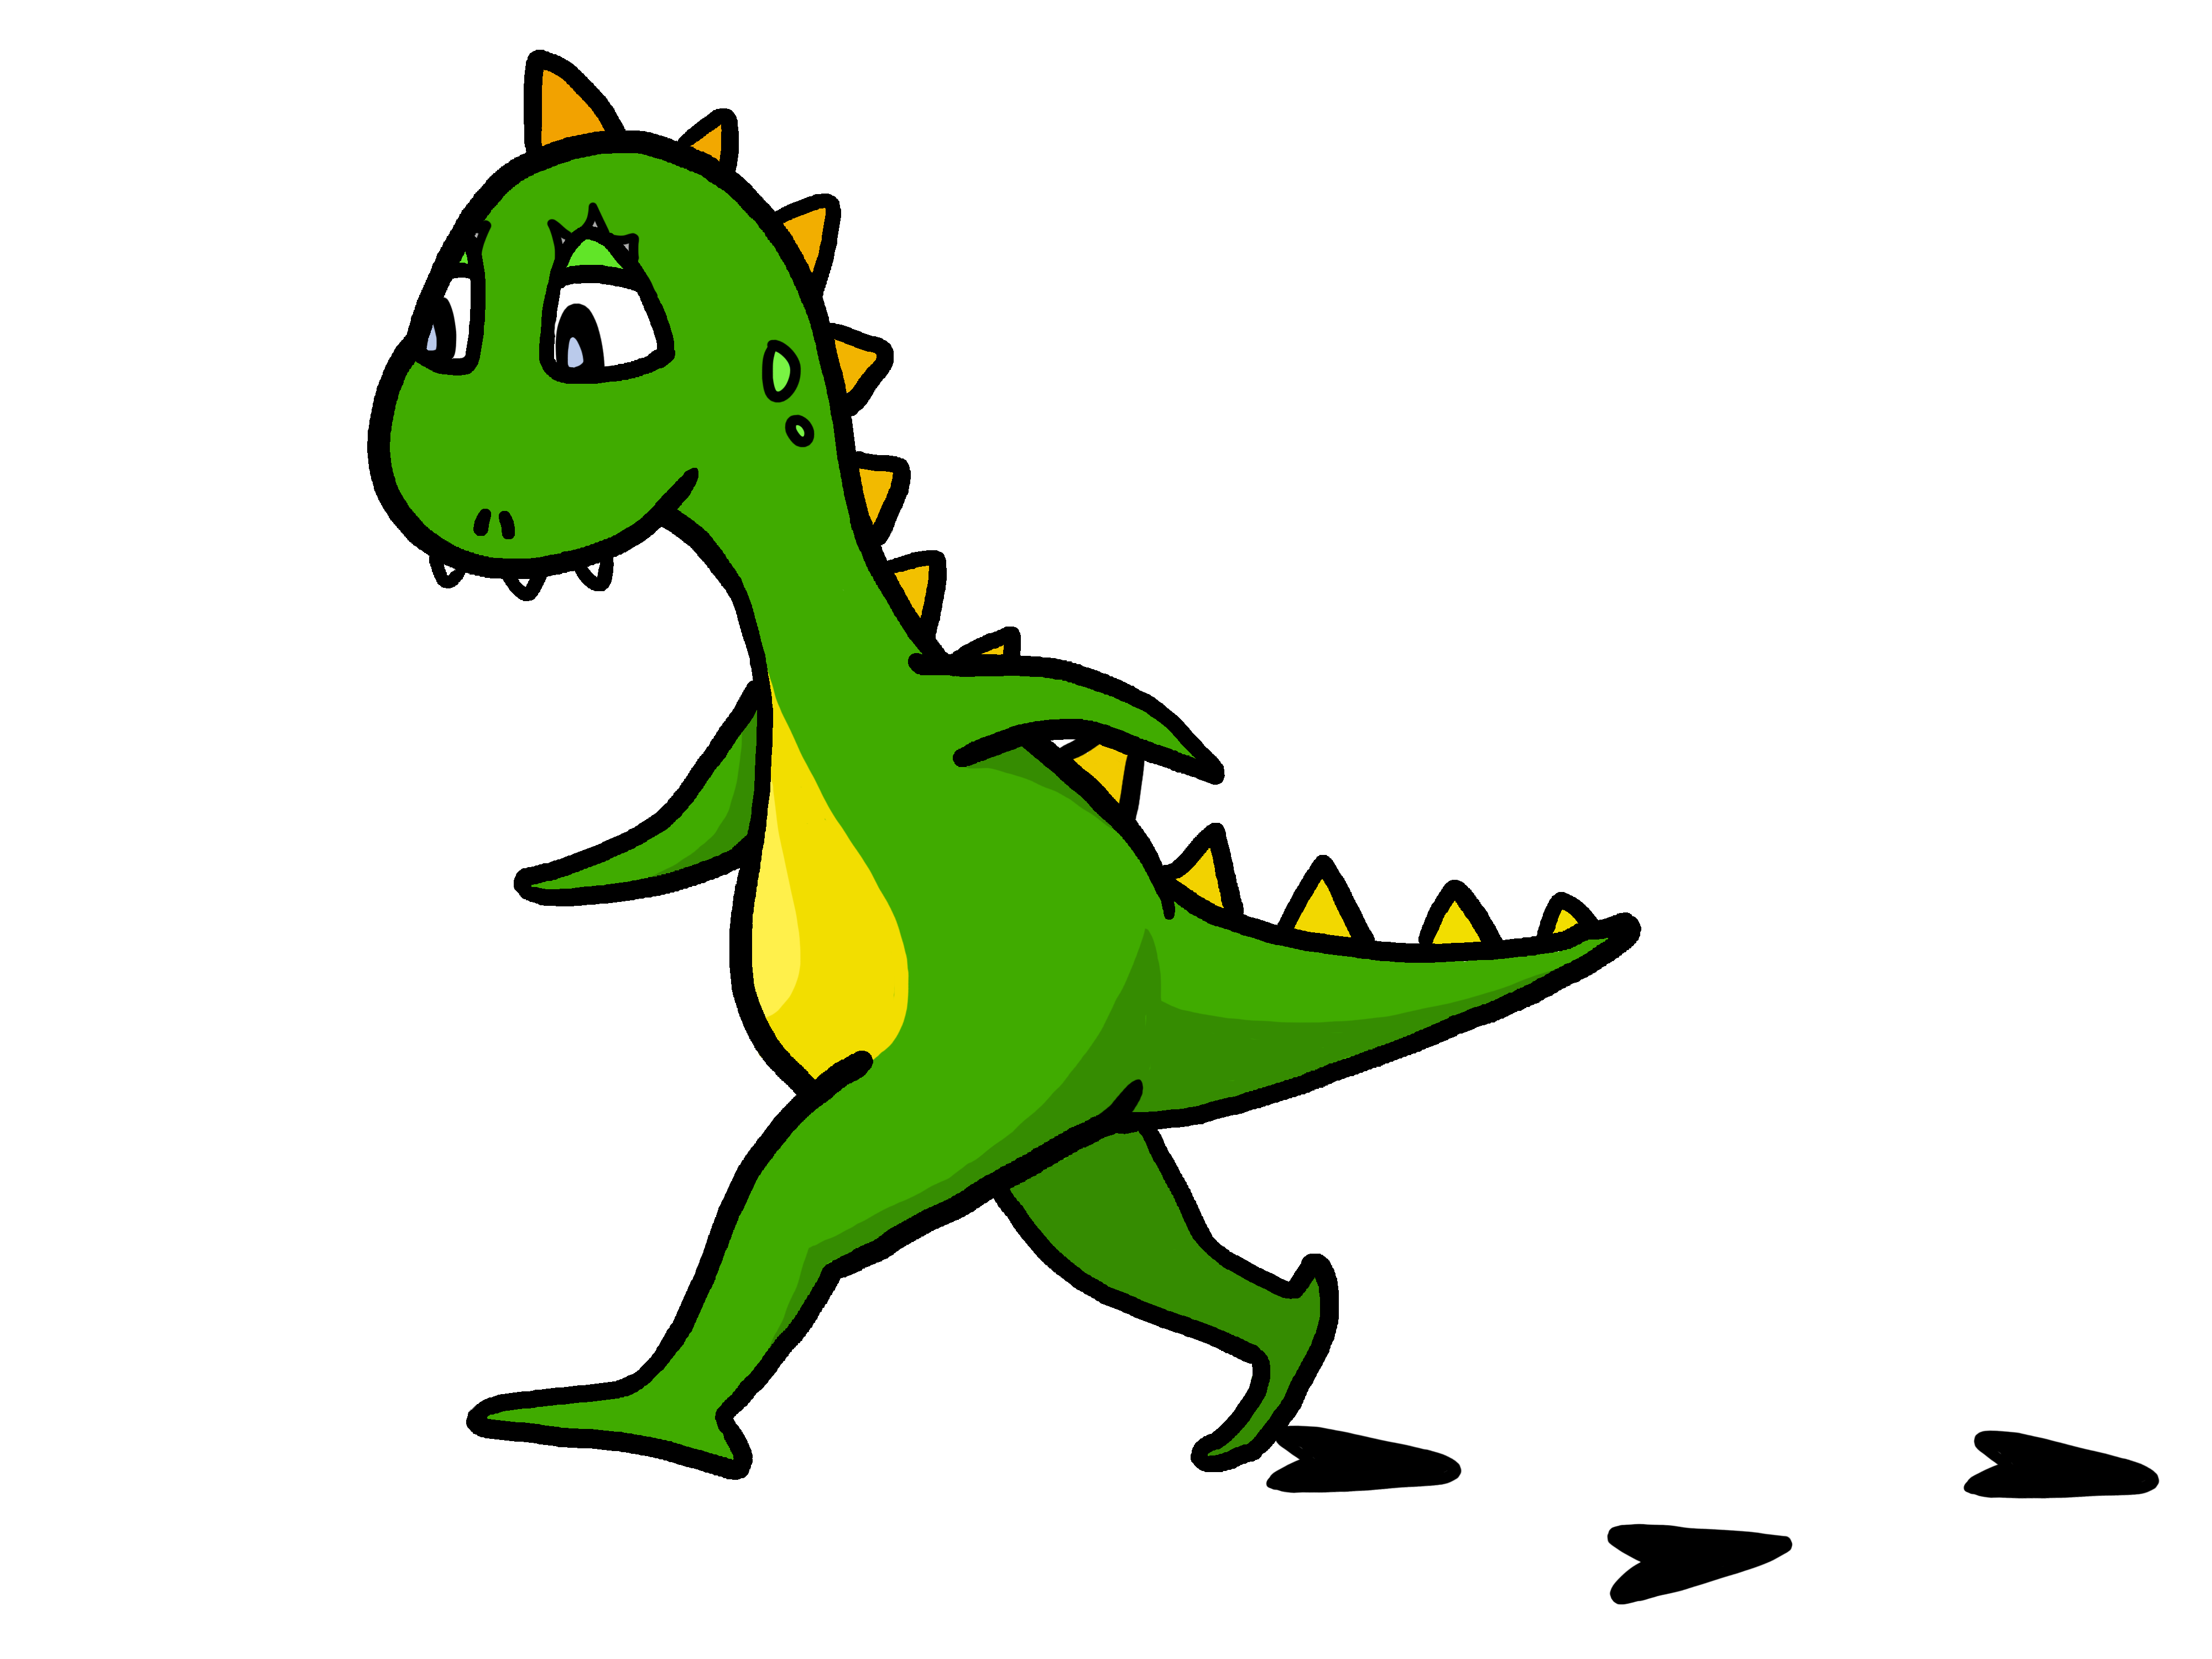 png transparent download Walking in line clipart. Funny dinosaur free image.